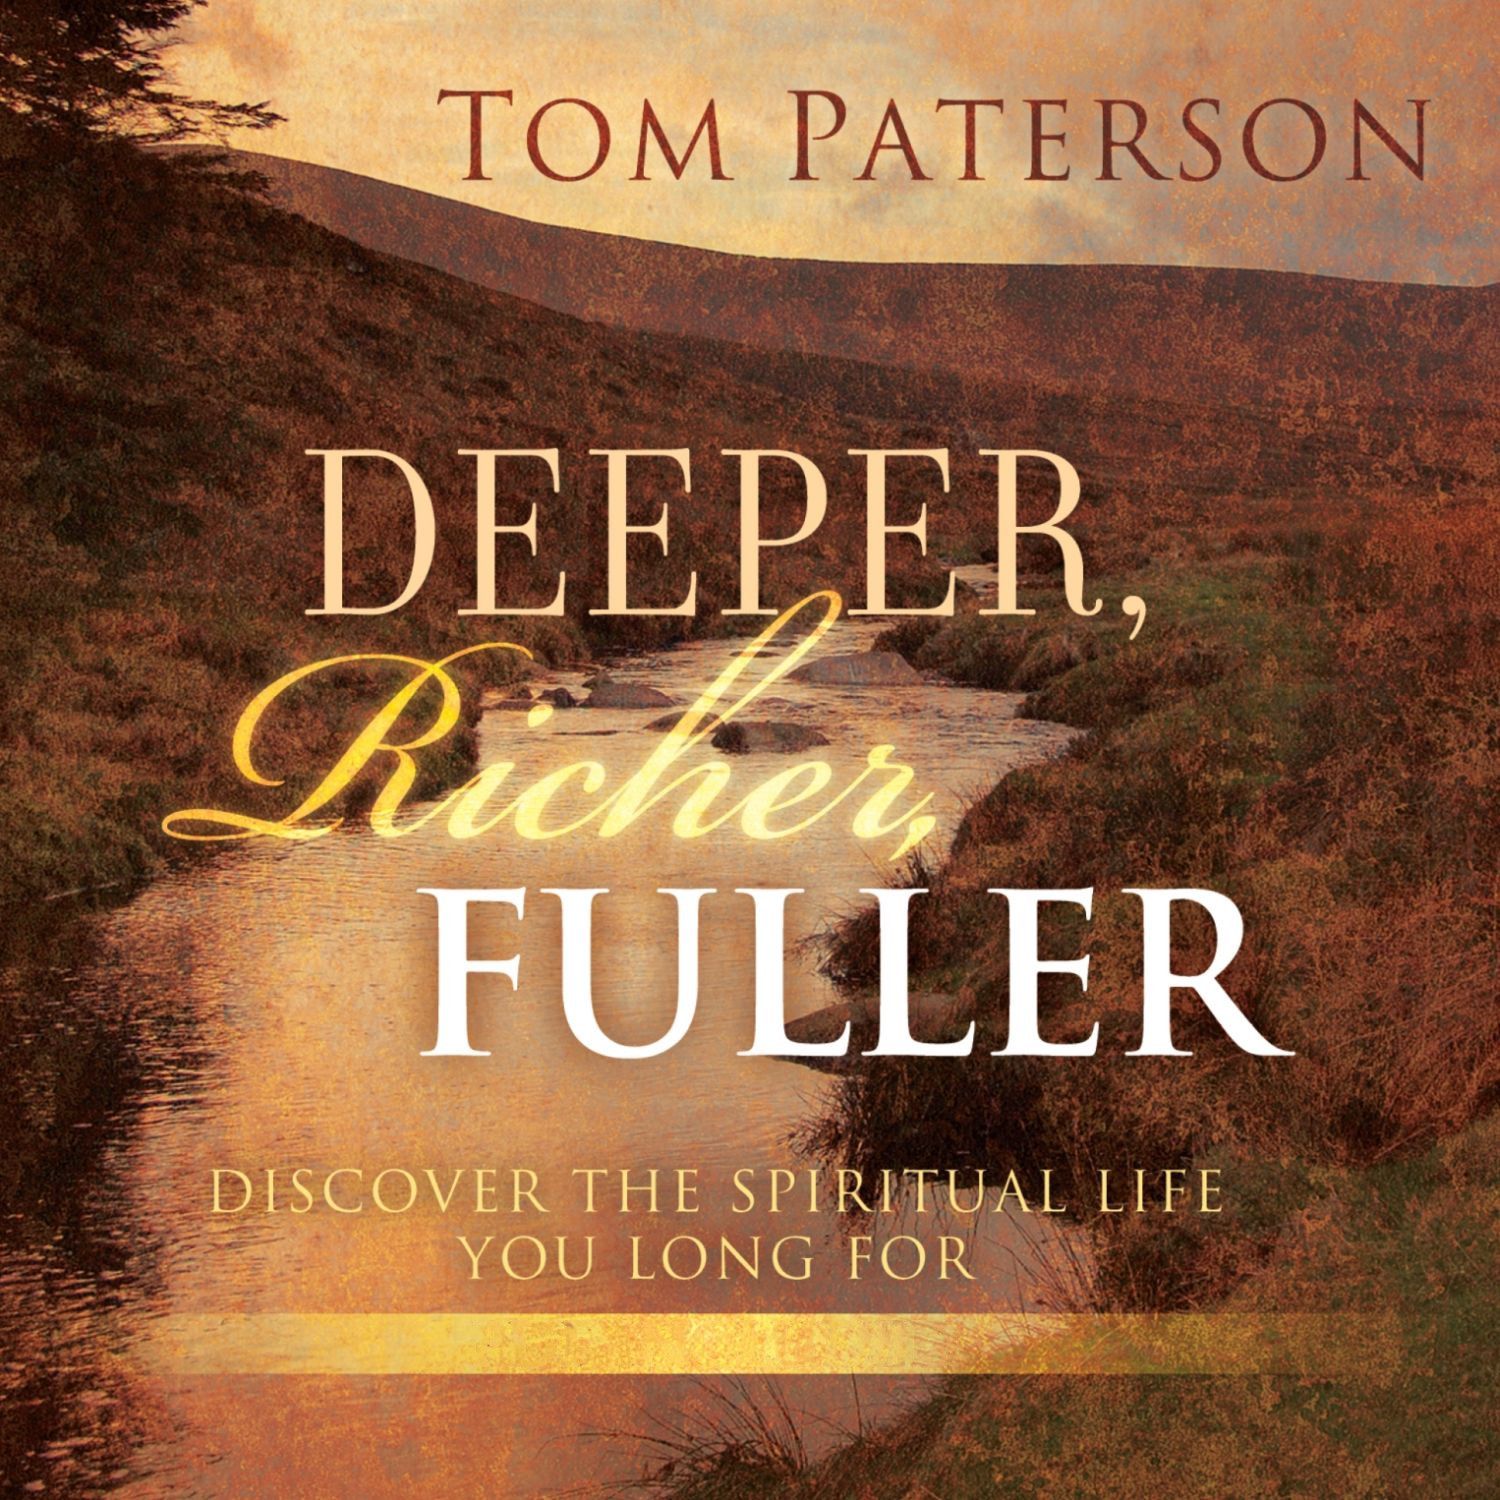 Printable Deeper, Richer, Fuller: Discover the Spiritual Life You Long For Audiobook Cover Art